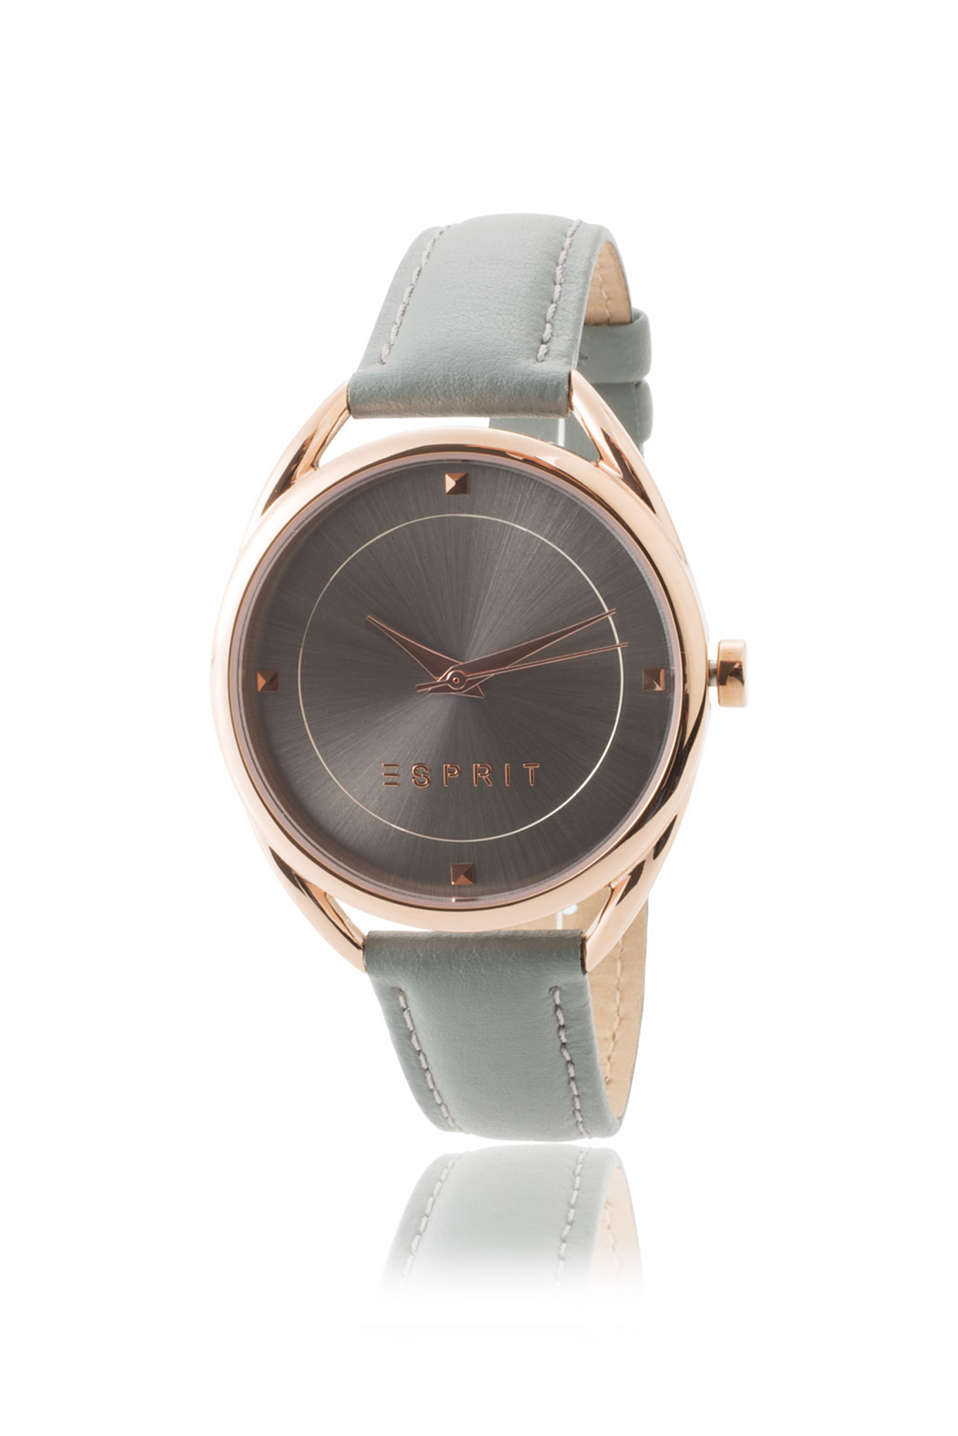 rose gold tone stainless steel watch case, grey leather strap and dial, Ø approx. 38 mm